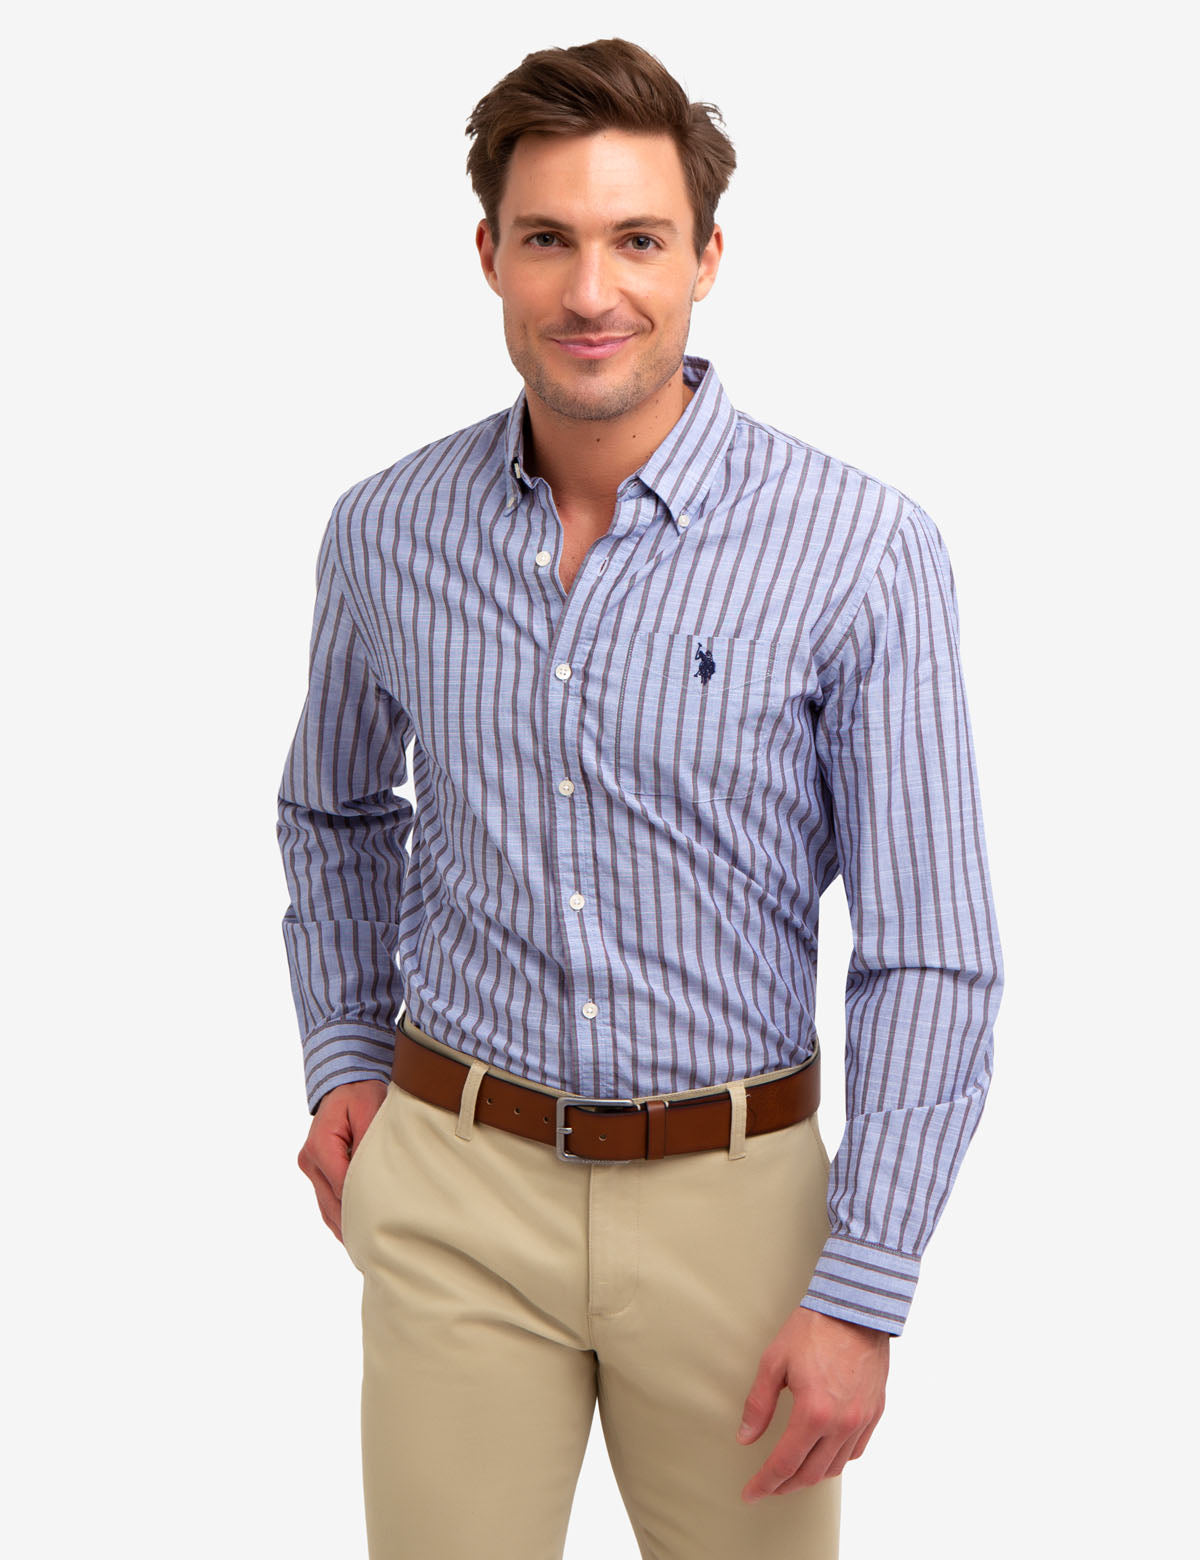 Vertical Dobby Striped Shirt - U.S. Polo Assn.